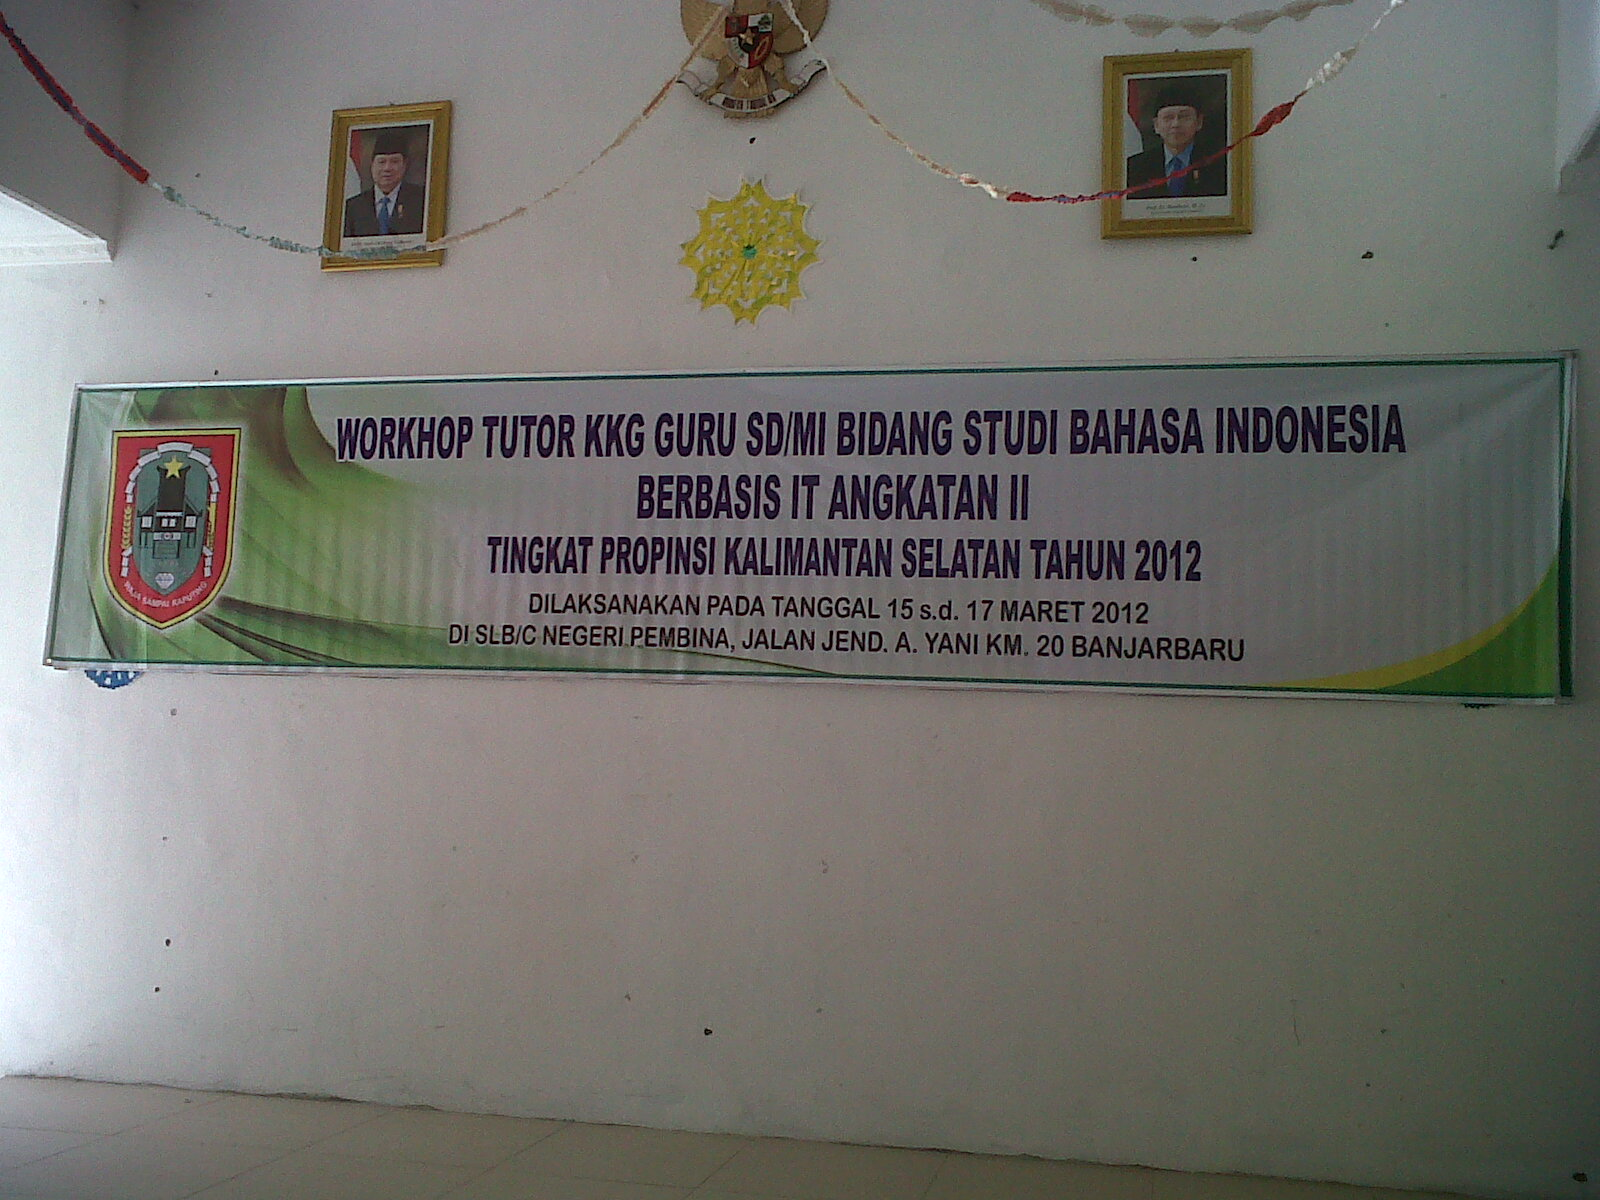 Workshop Tutor KKG SD/MI Bidang Studi Bahasa Indonesia Berbasis IT